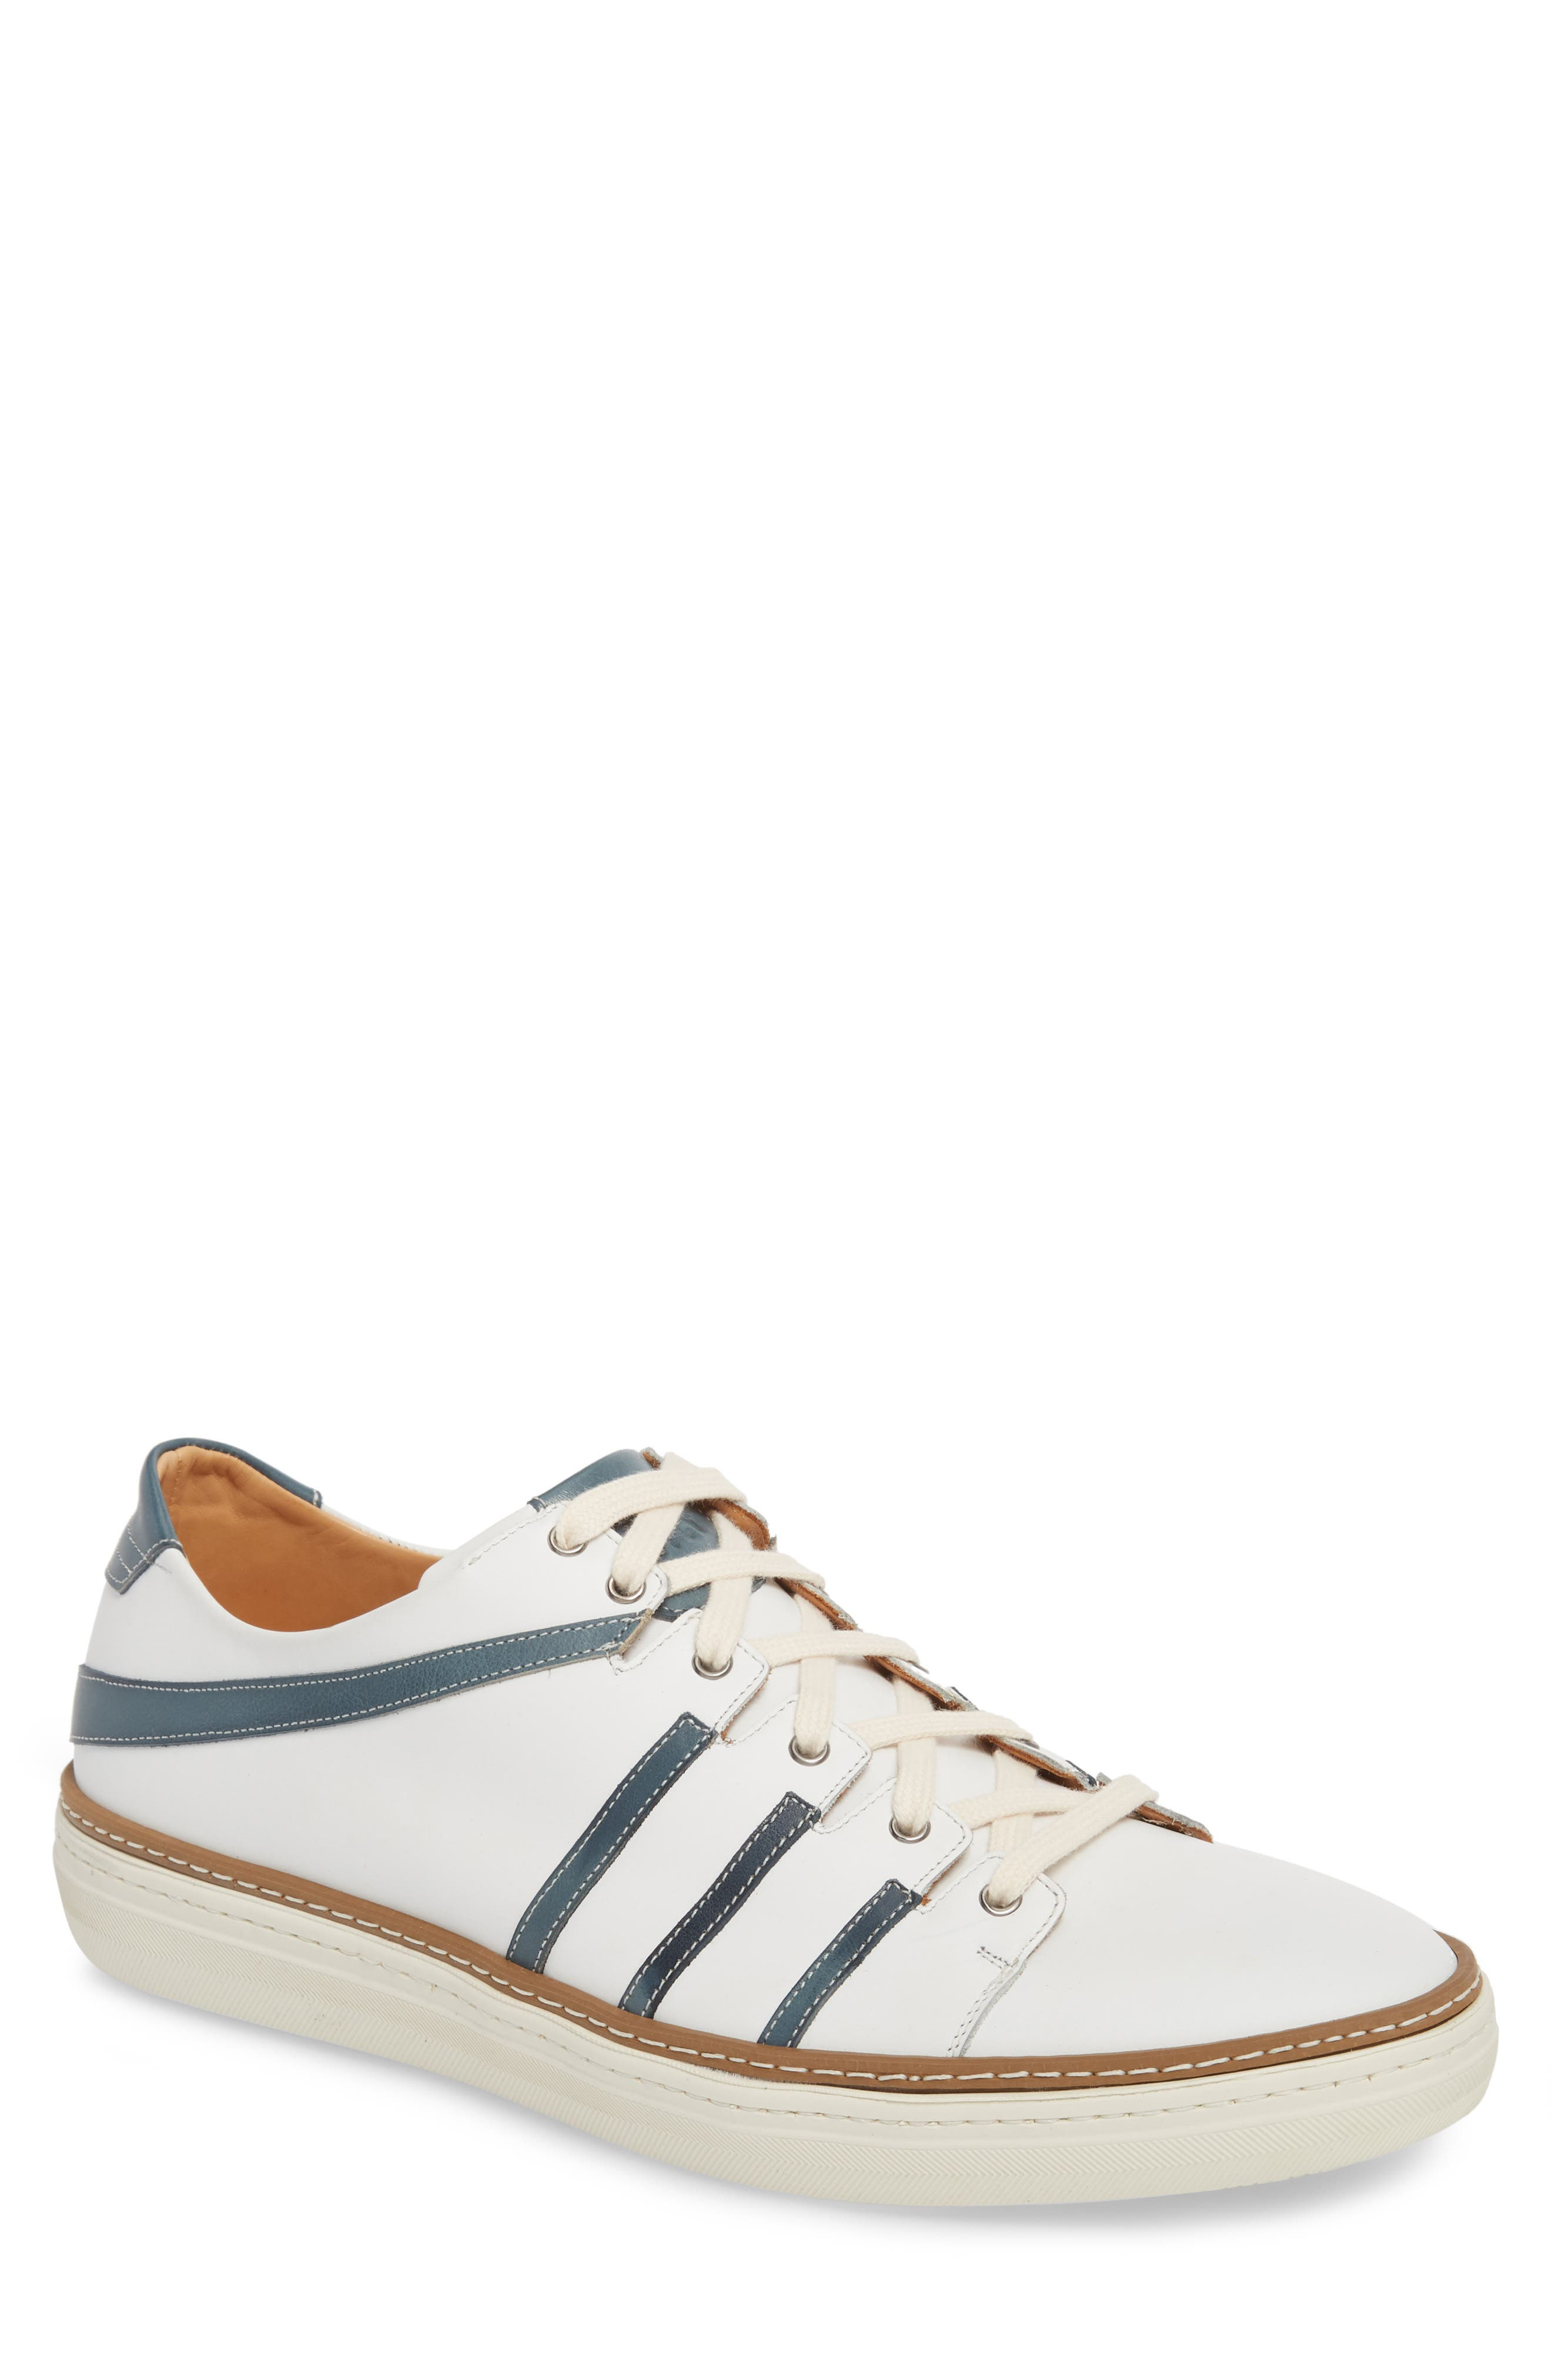 Tebas Striped Low Top Sneaker,                             Main thumbnail 1, color,                             White/ Jeans Leather